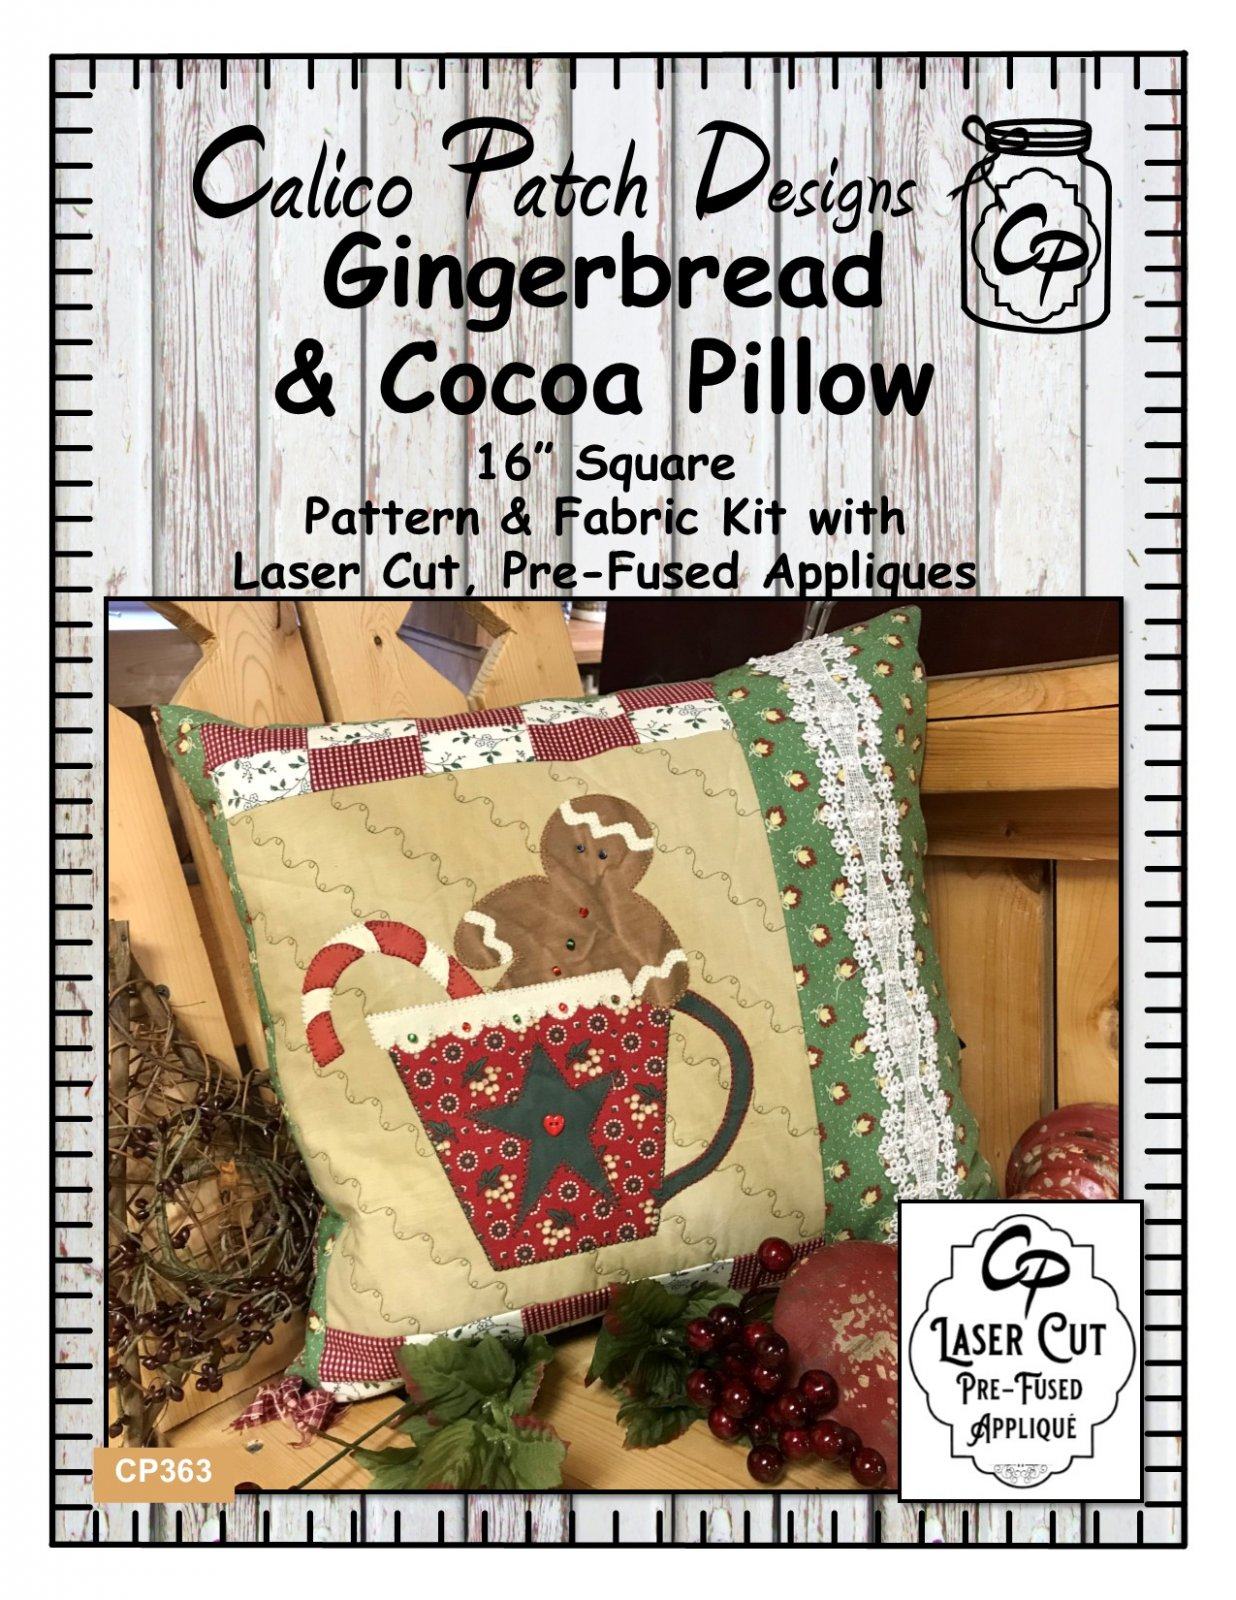 Gingerbread & Cocoa Pillow